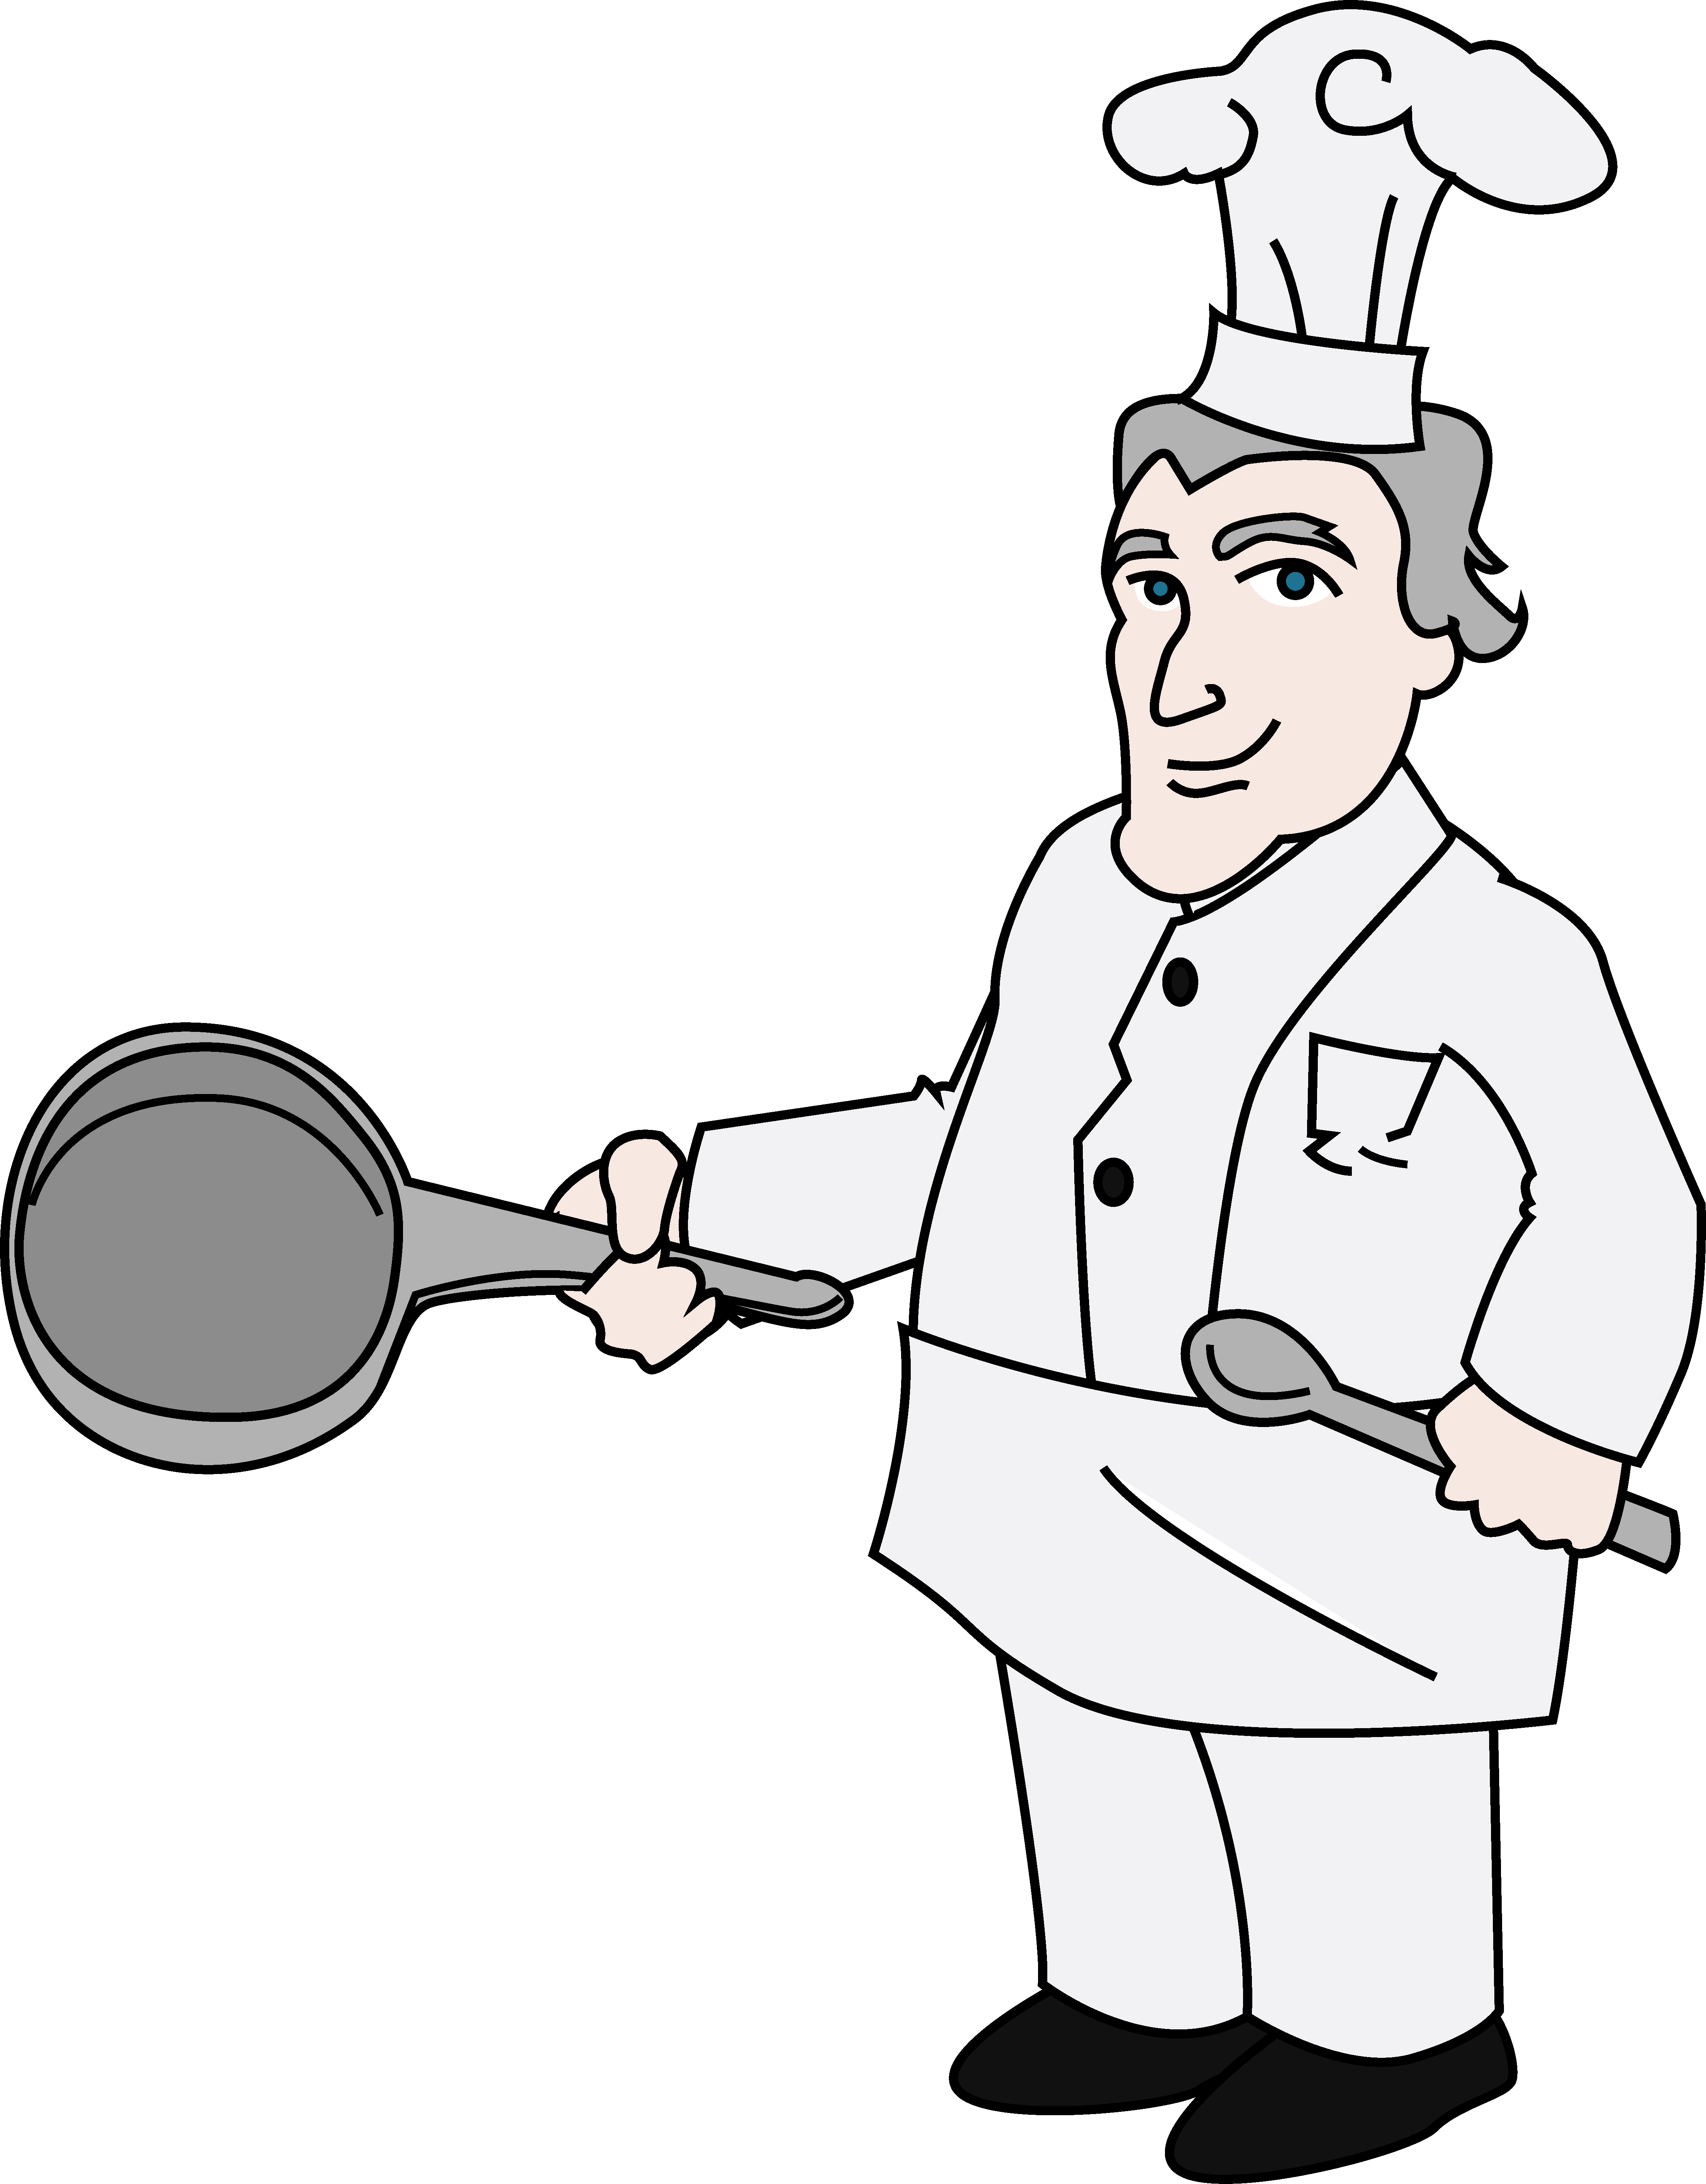 Free clipart images chef image royalty free library Chef Clipart Illustration - Free Clip Art image royalty free library